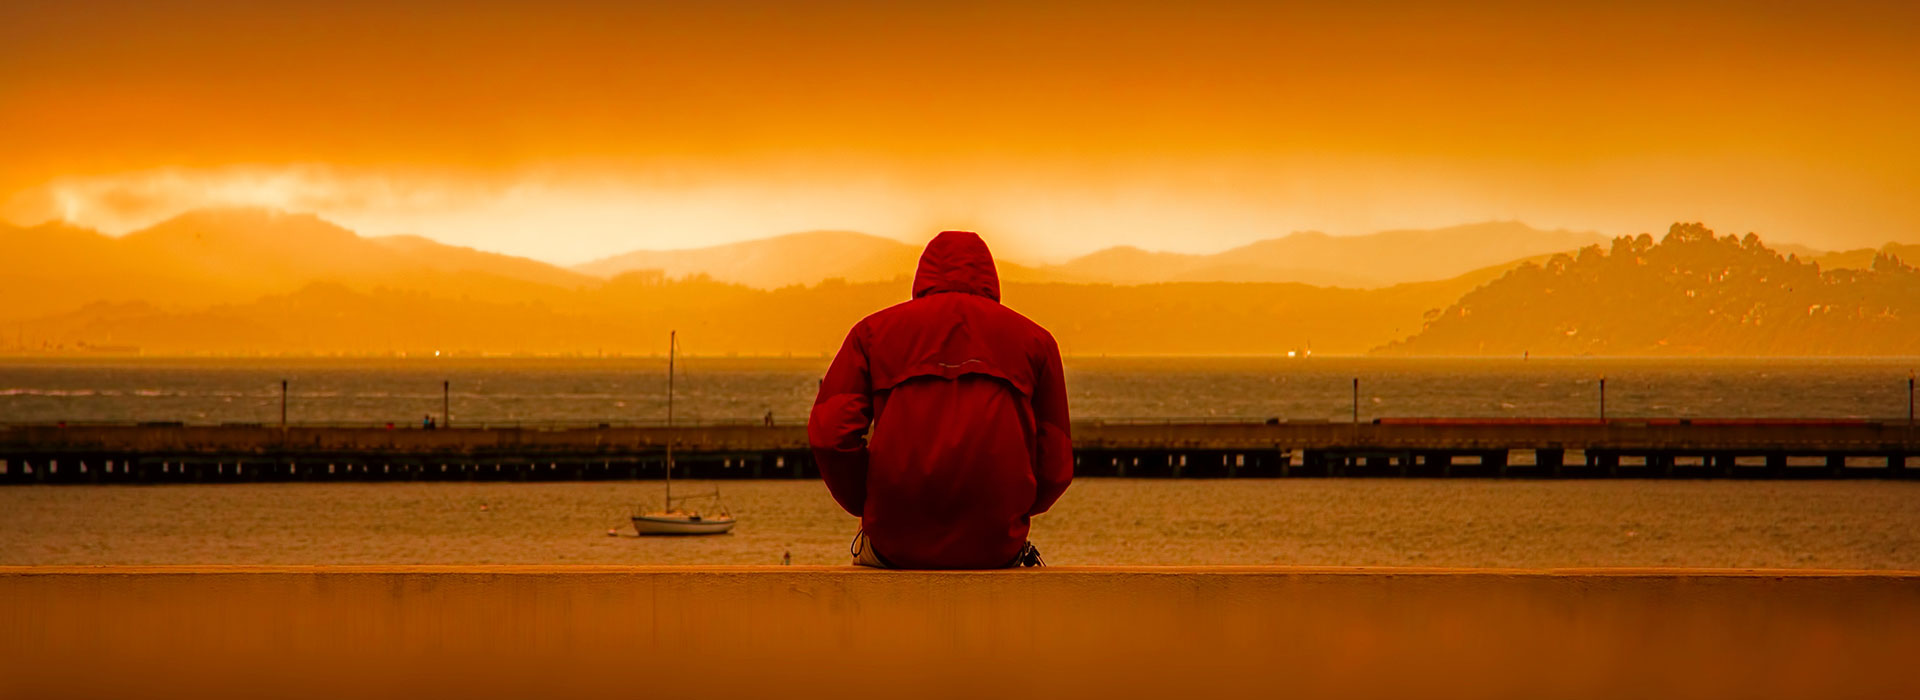 A person wearing a hoodie facing into a sunset.